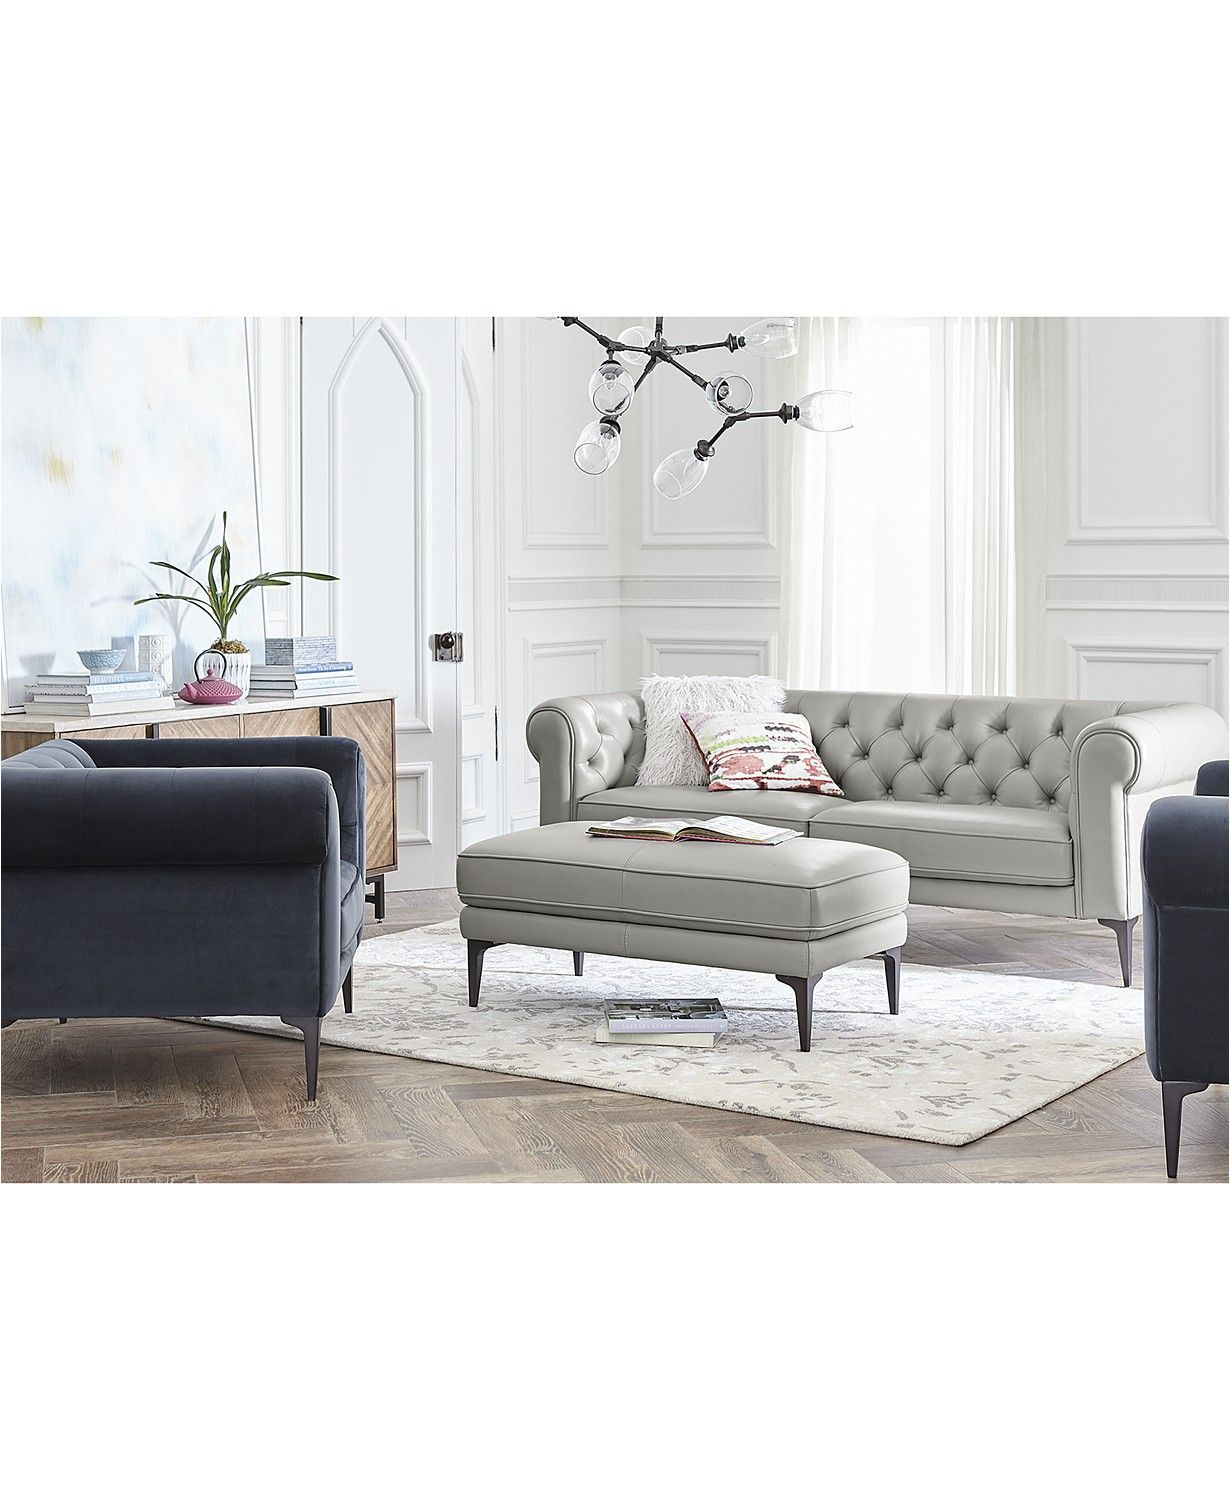 Furniture Remina Leather And Fabric Sofa Collection Furniture Macy S Macysfurn Glam Living Room Furniture Living Room Furniture Living Room Furniture Sale